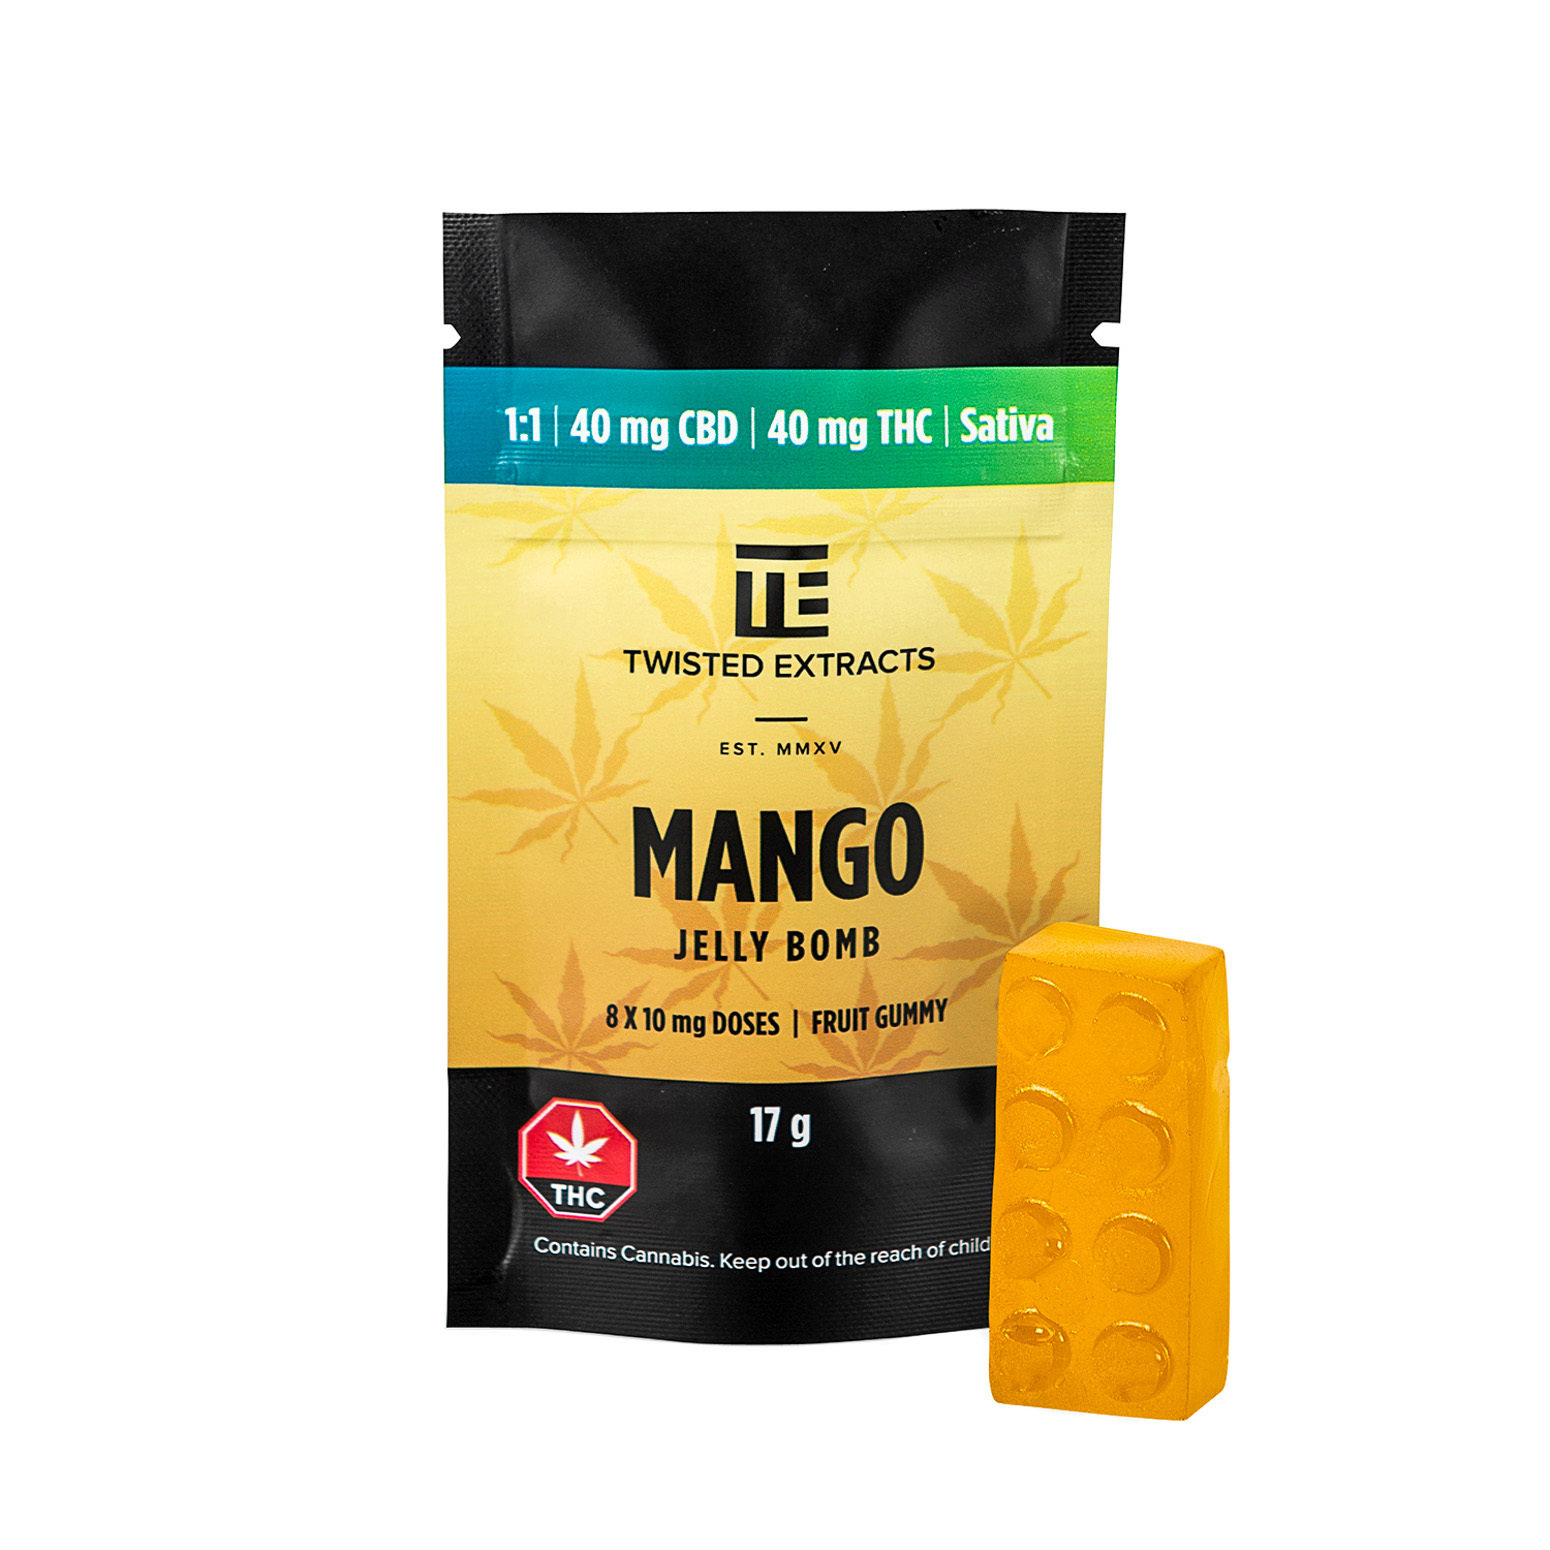 40mg 1:1 THC/CBD Mango Jelly Bomb by Twisted Extracts 00007